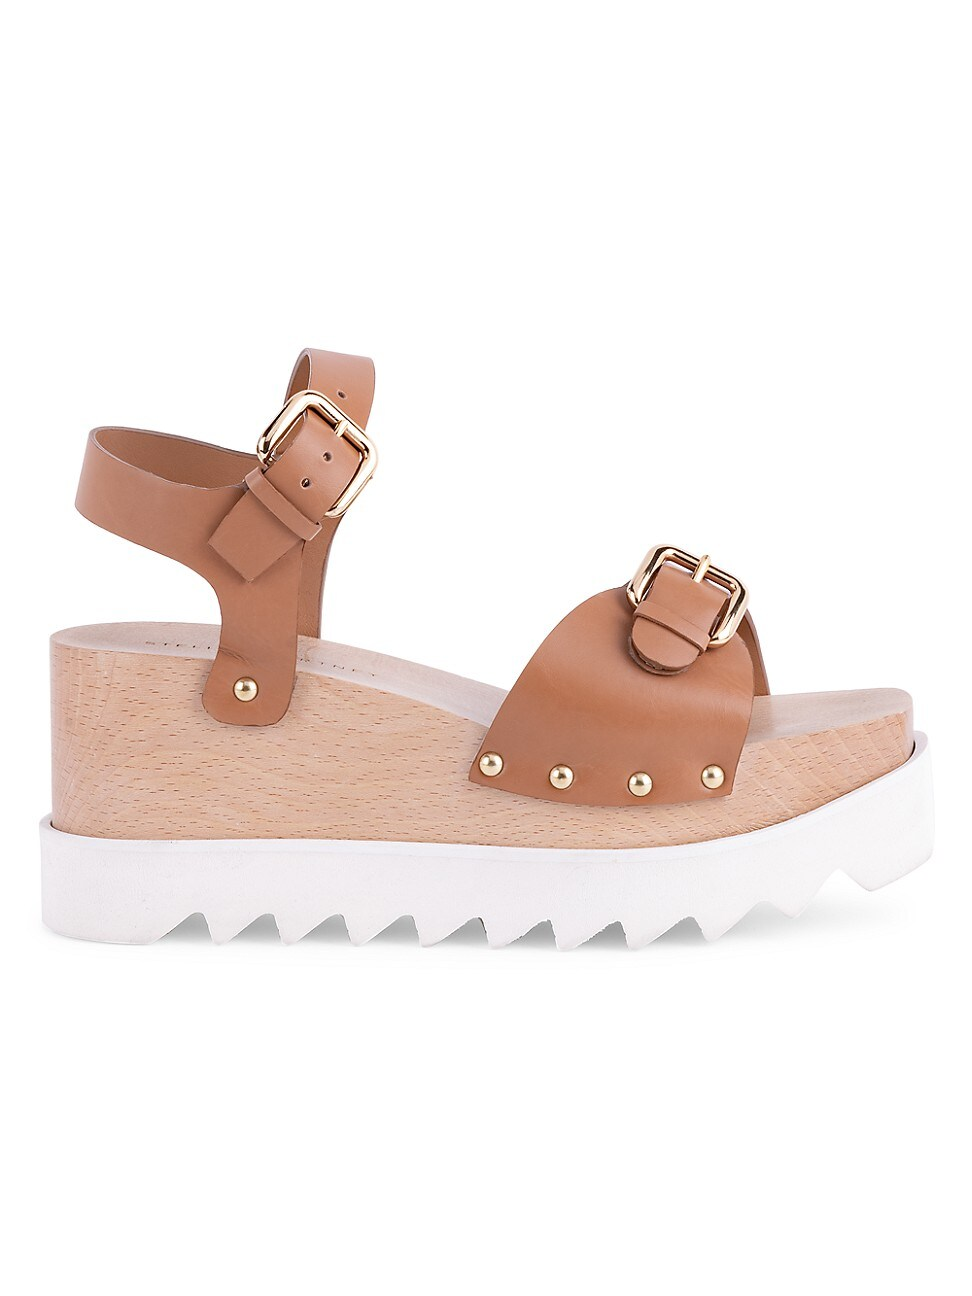 Stella Mccartney WOMEN'S ELYSE PLATFORM WEDGE SANDALS